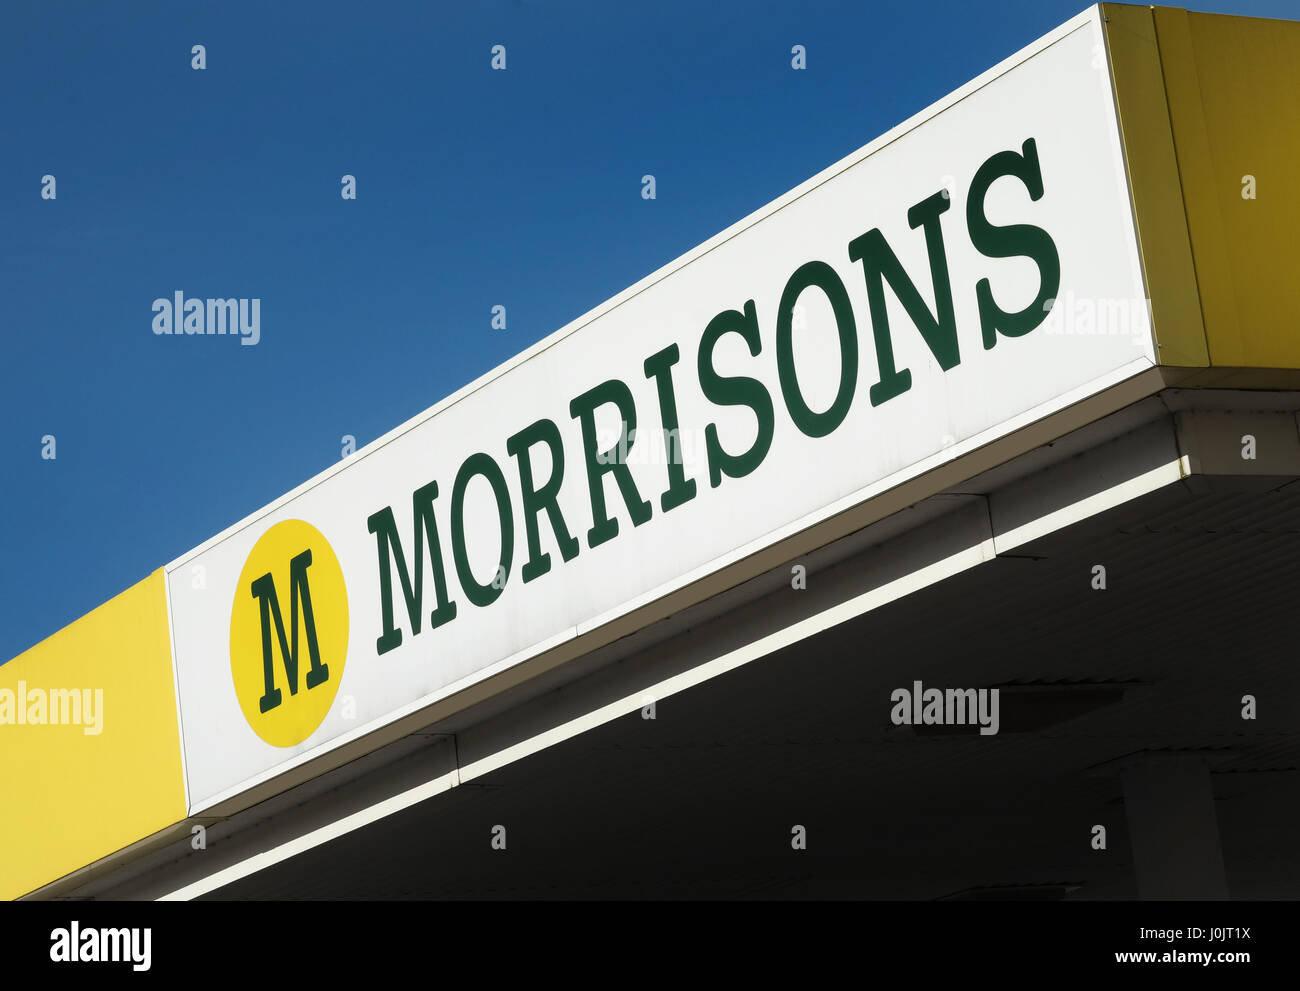 Morrisons sign - Stock Image